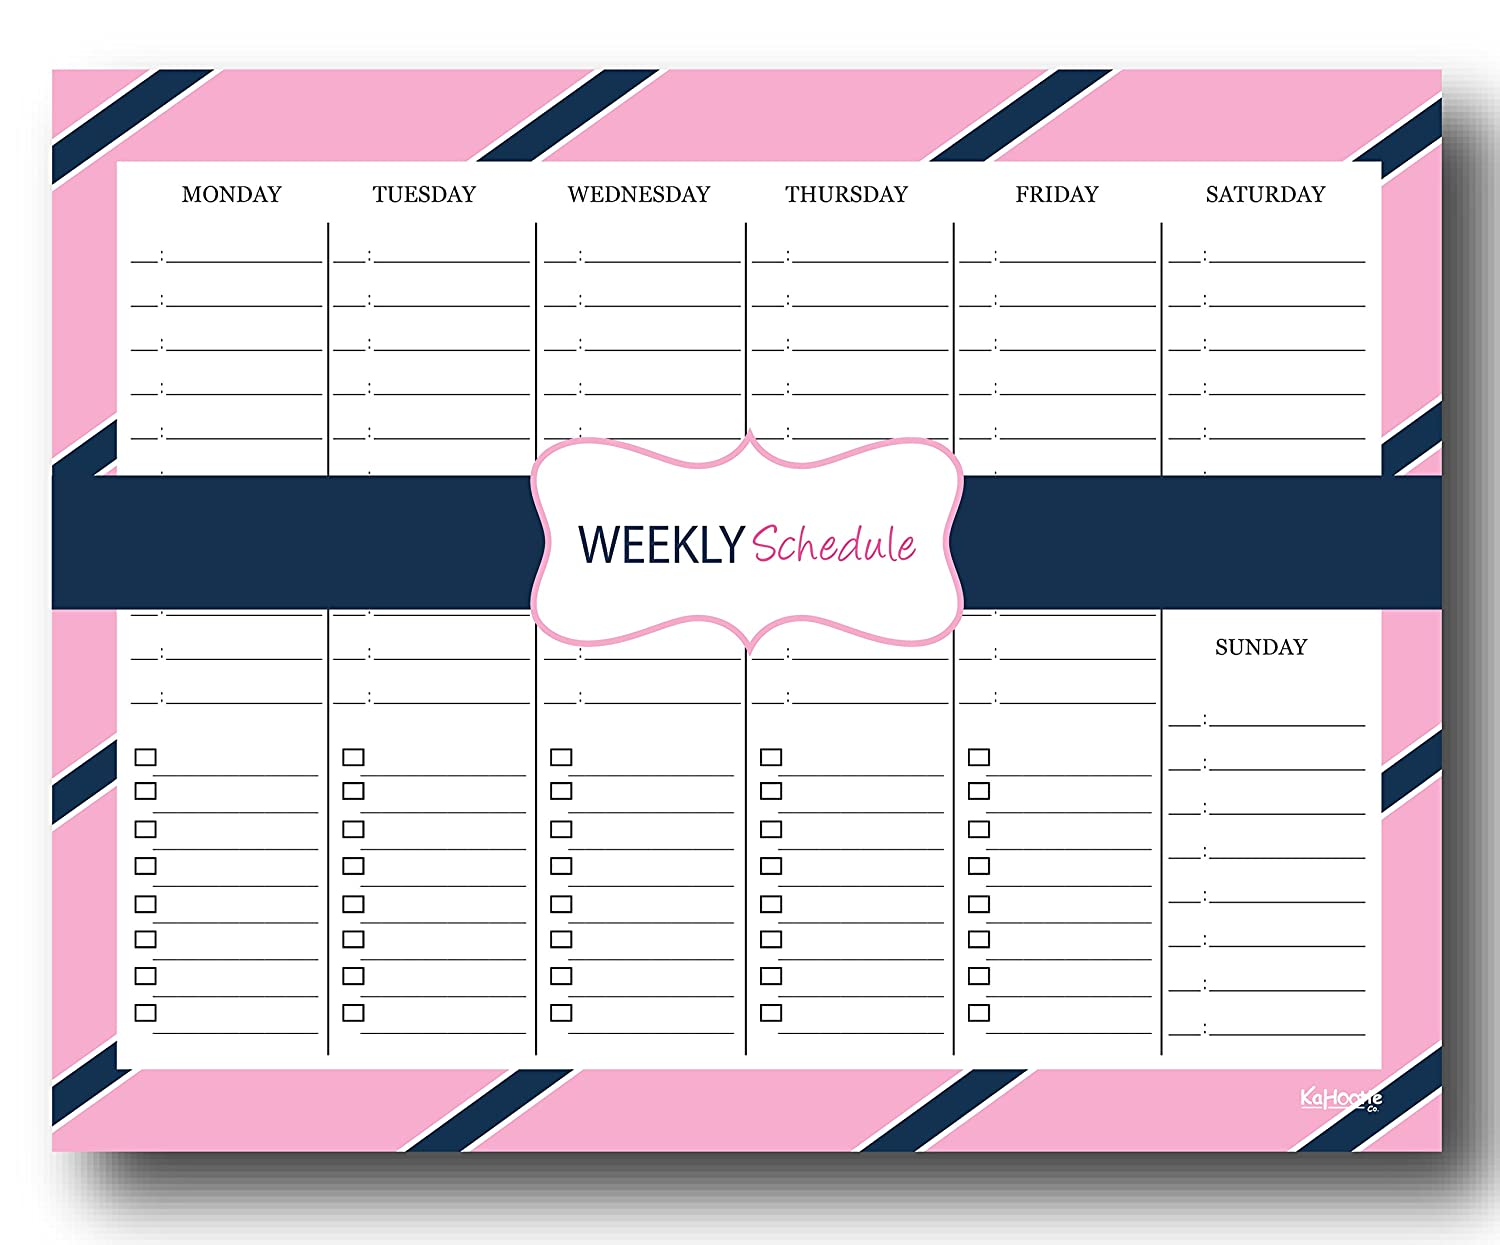 Amazon.com : Kahootie Co Weekly Schedule Notepad- Daily ...